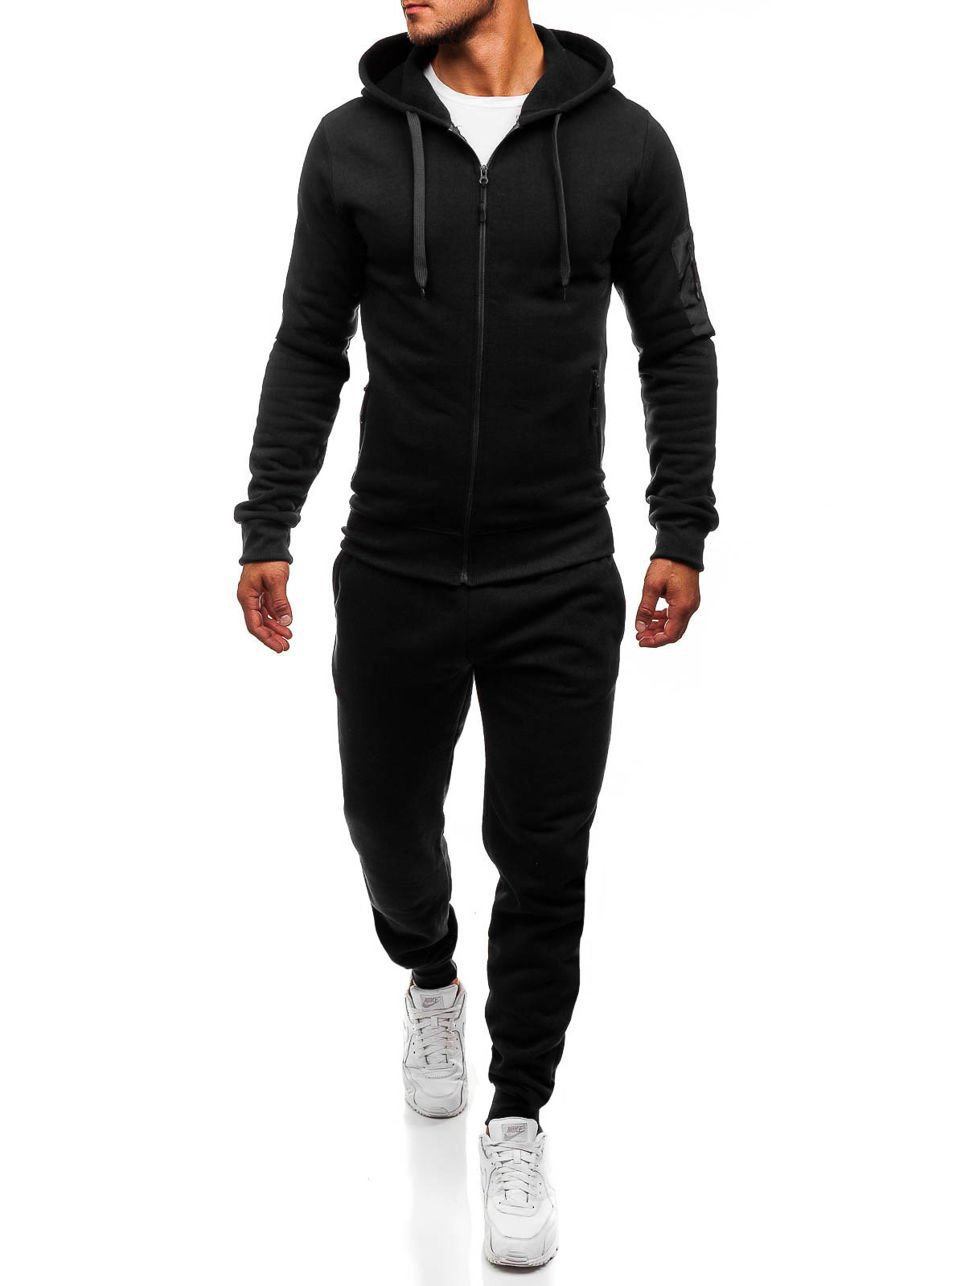 New Style 2018 Autumn And Winter New Style Fashion Men Leisure Set Sports Cardigan Suit Hoodie